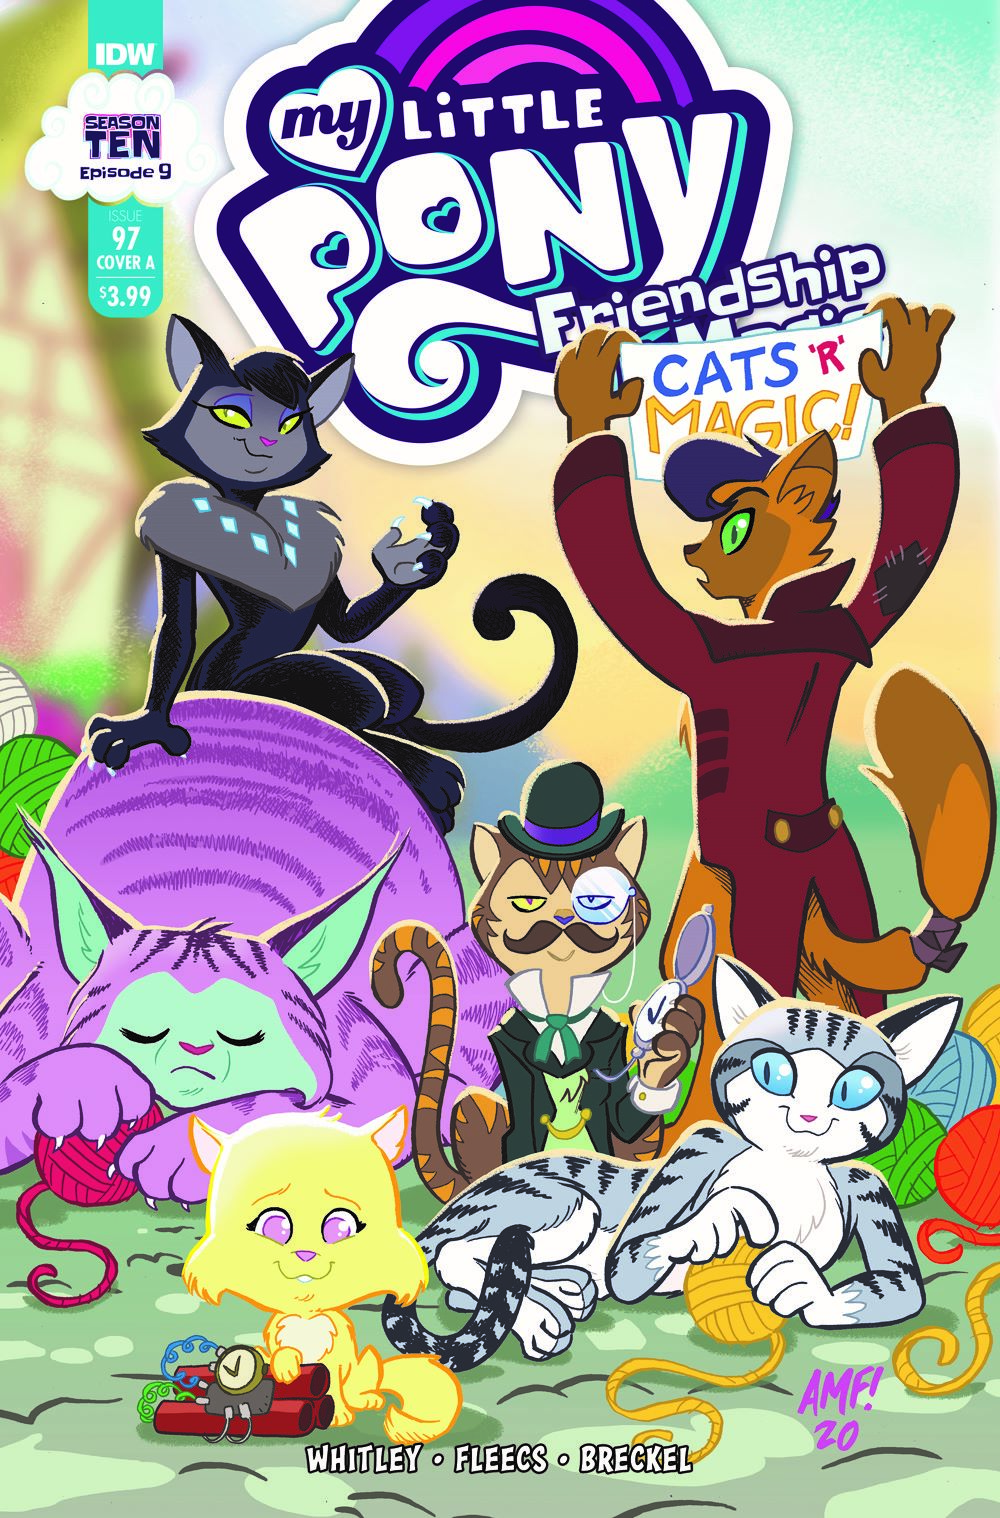 MLP97_09-coverA ComicList Previews: MY LITTLE PONY FRIENDSHIP IS MAGIC #97